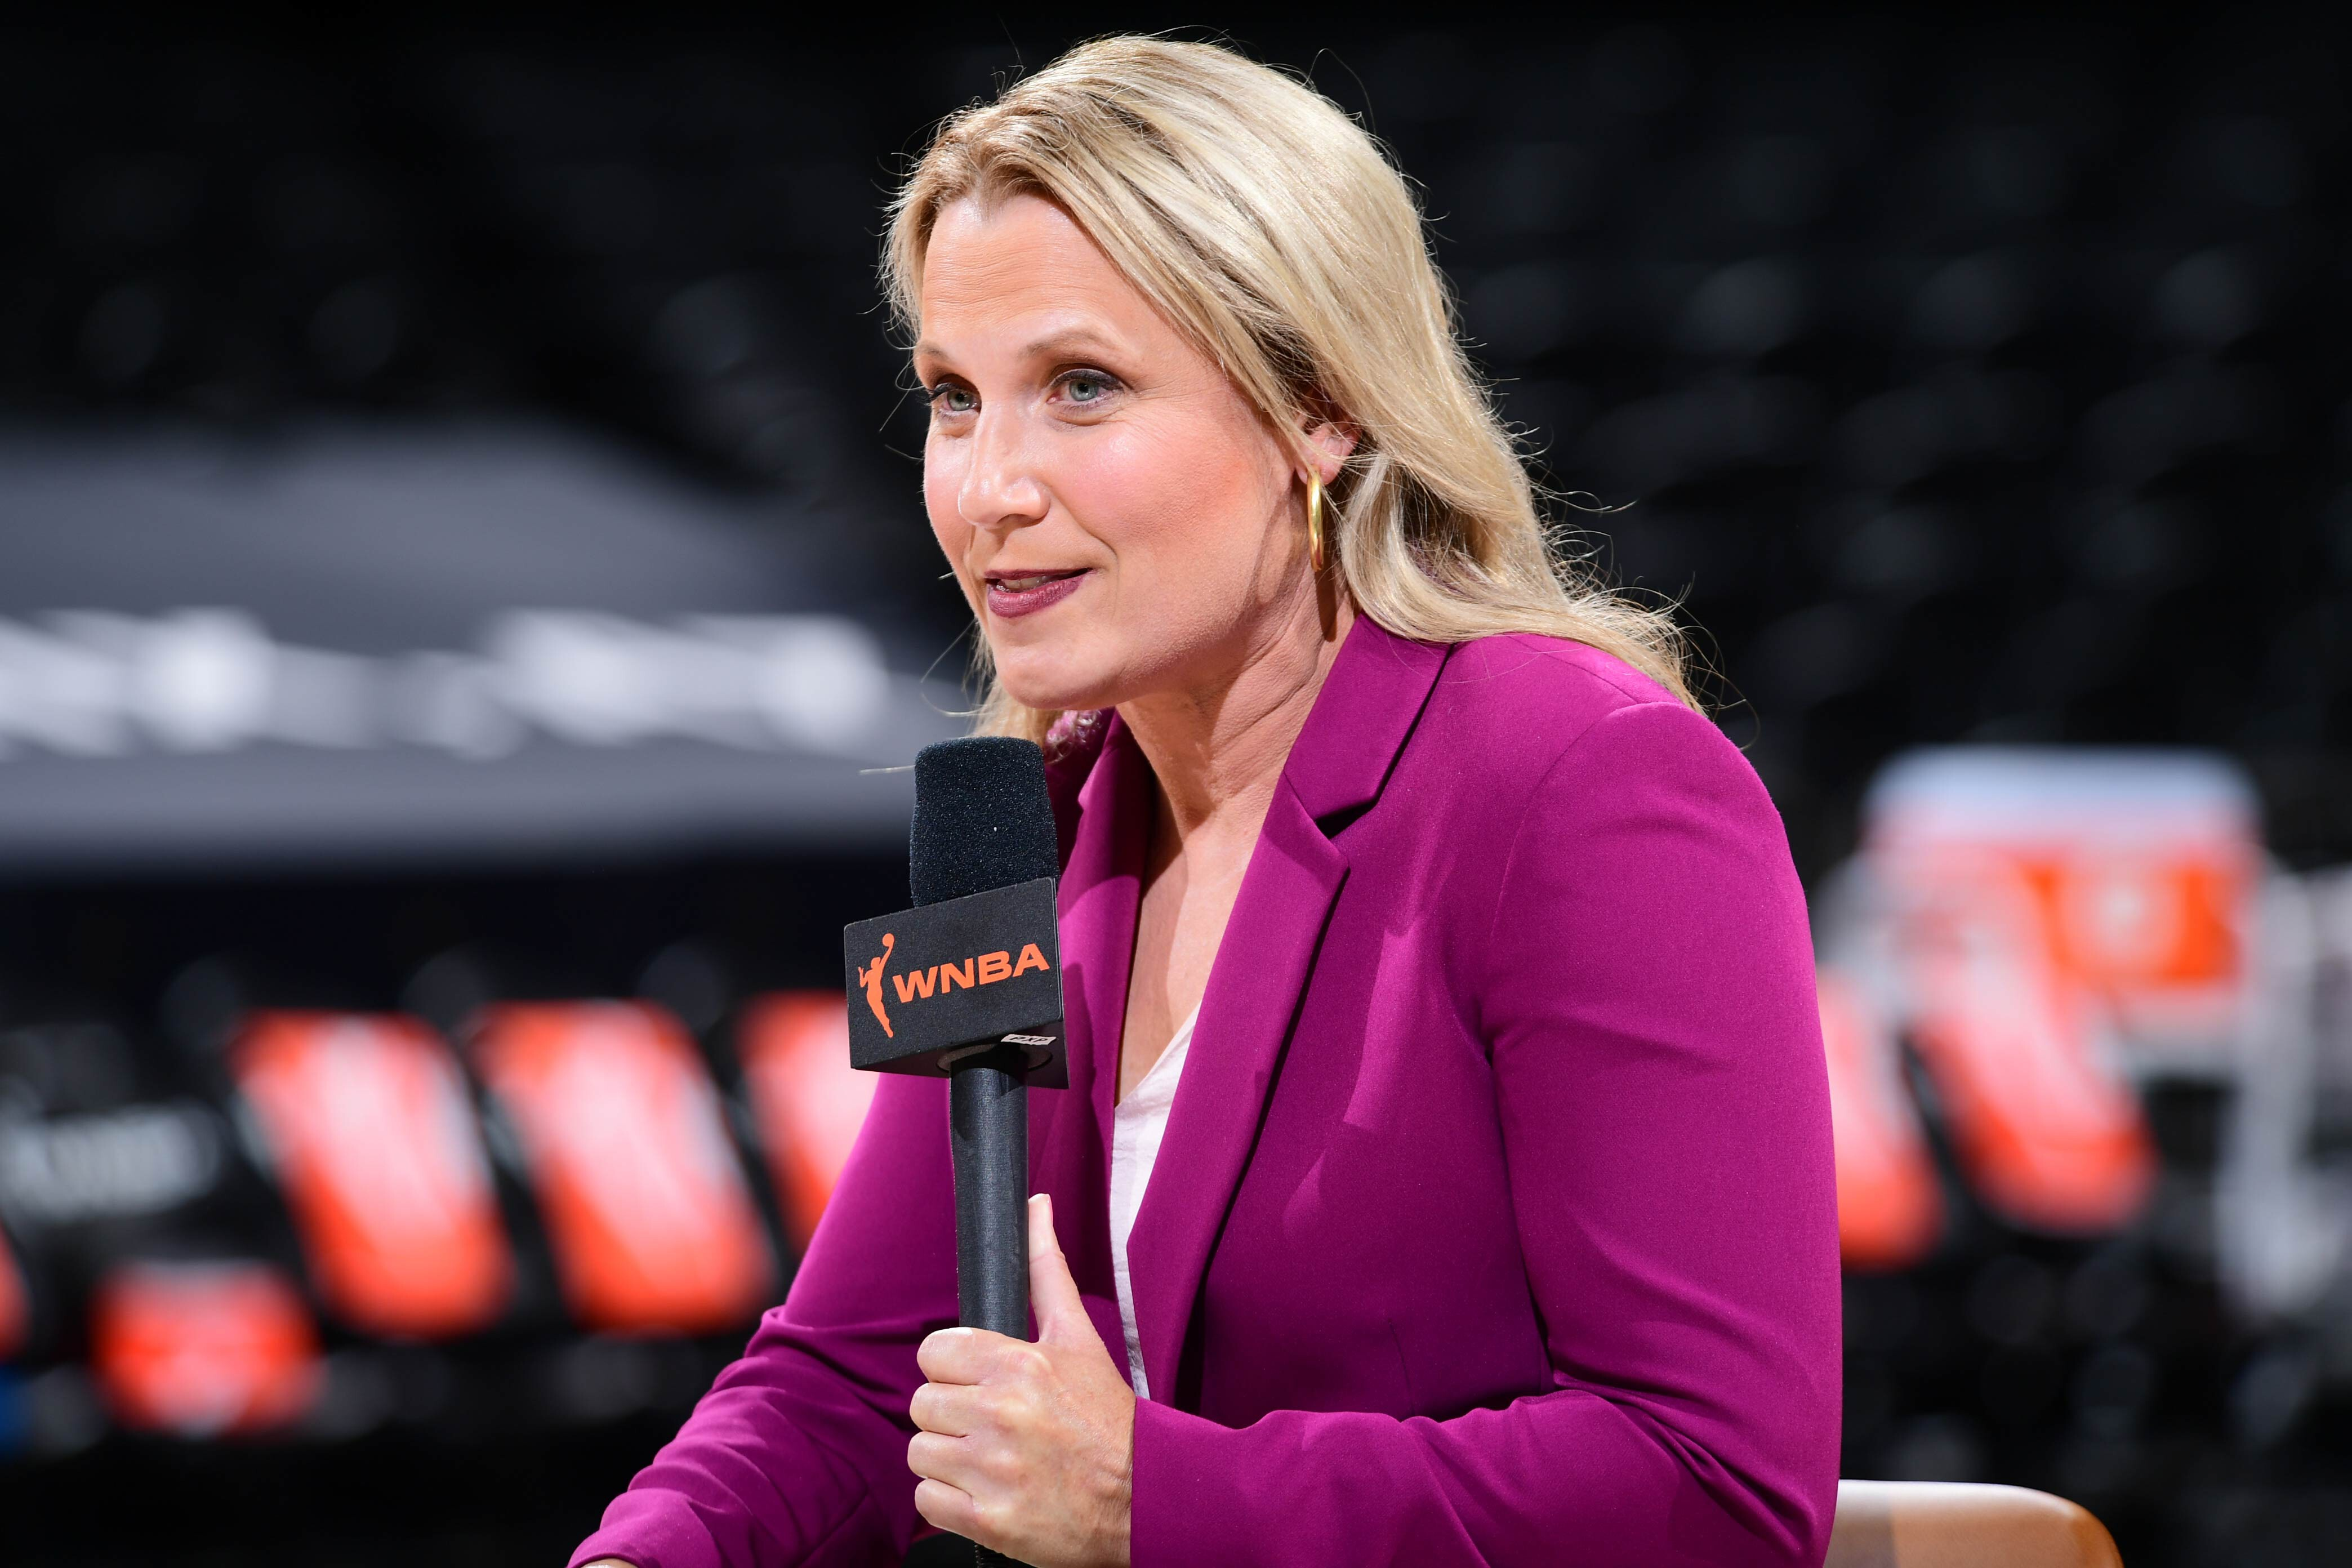 Bucks hire Lisa Byington, making her the first woman to be a full-time TV play-by-play broadcaster for a major men's professional sports team